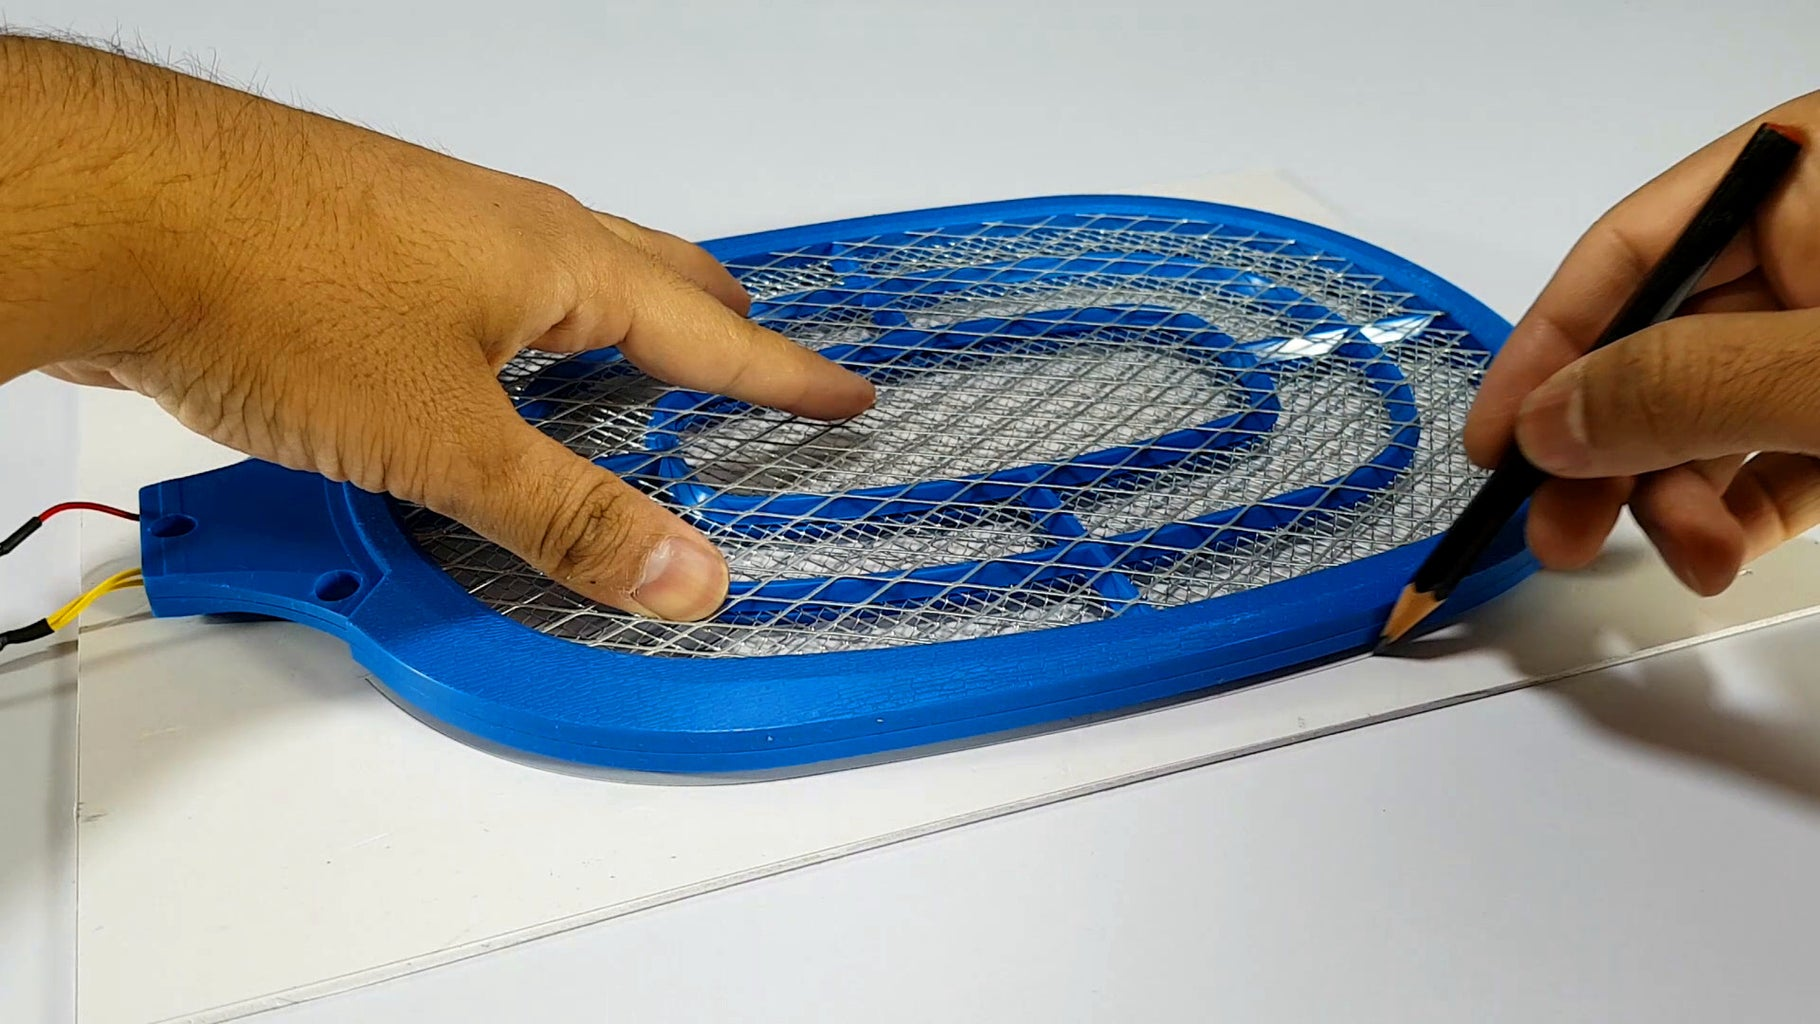 Disassemble Mosquito Swatter Racket